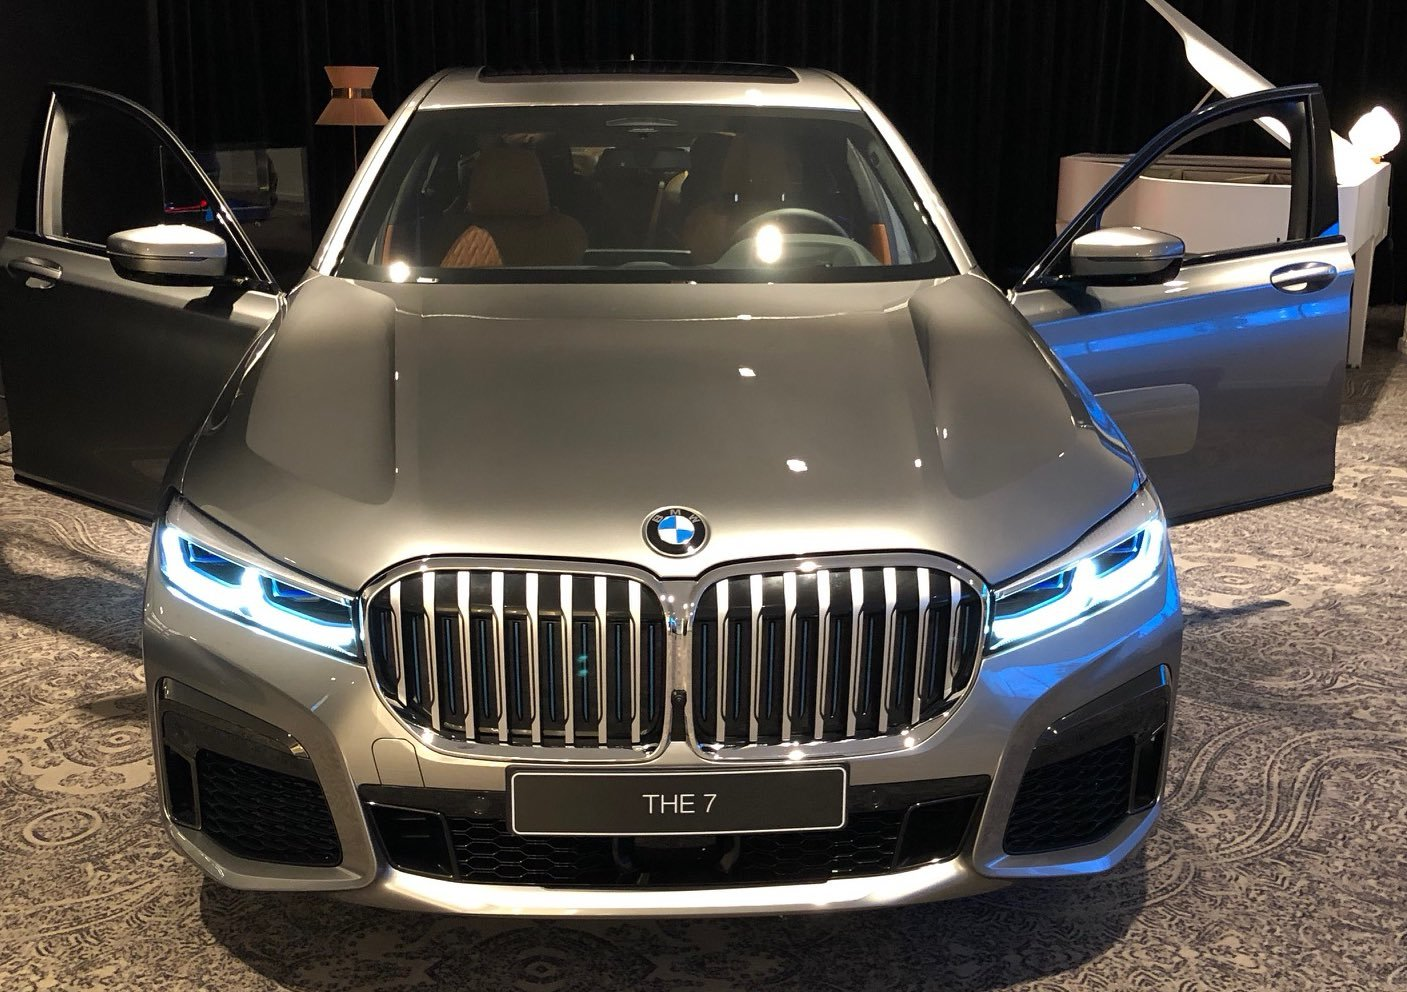 BMW 7 Series facelift 2019 leaked official images (7)